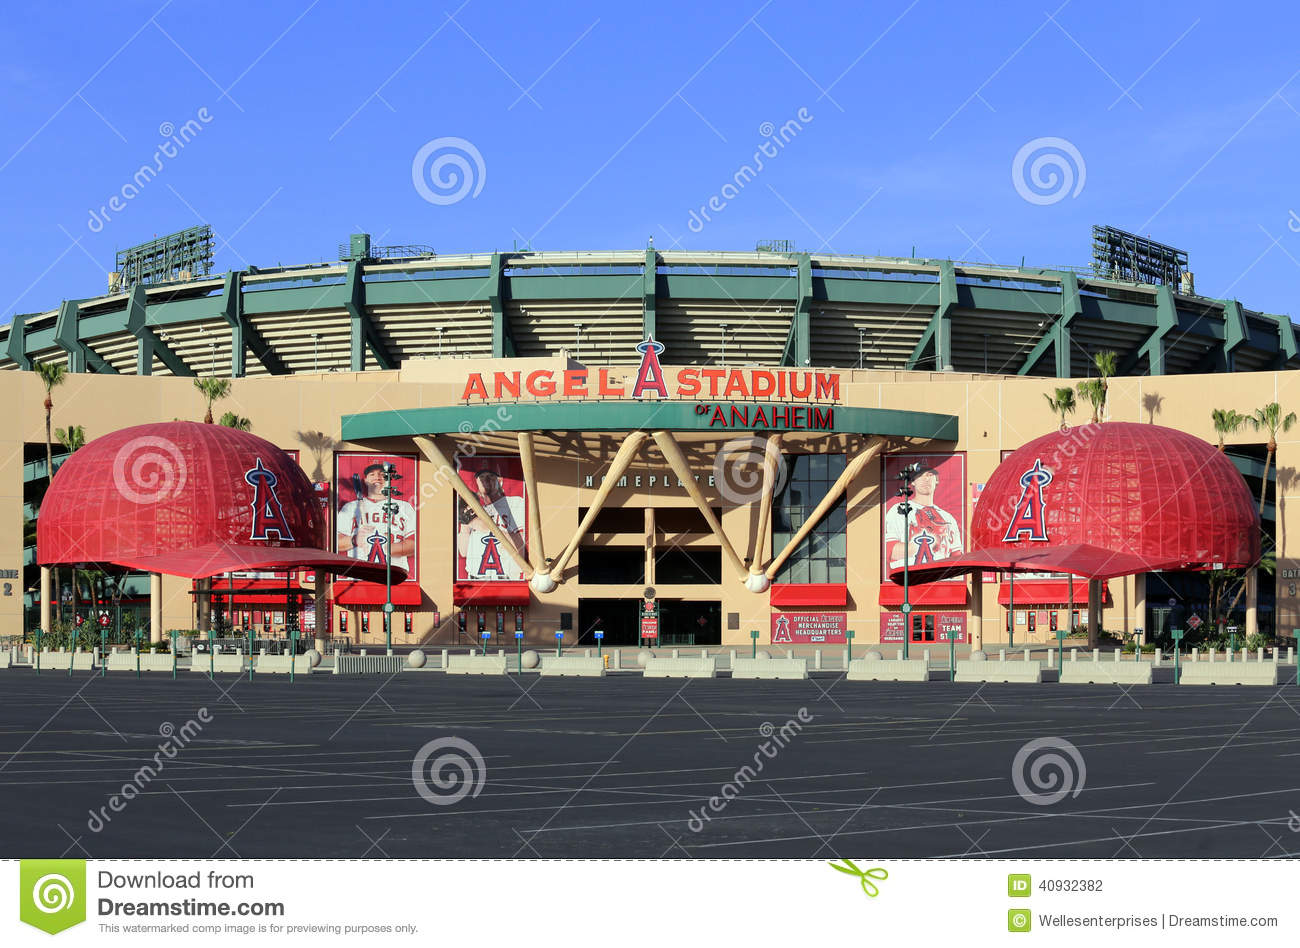 Estadio del ángel de Anaheim